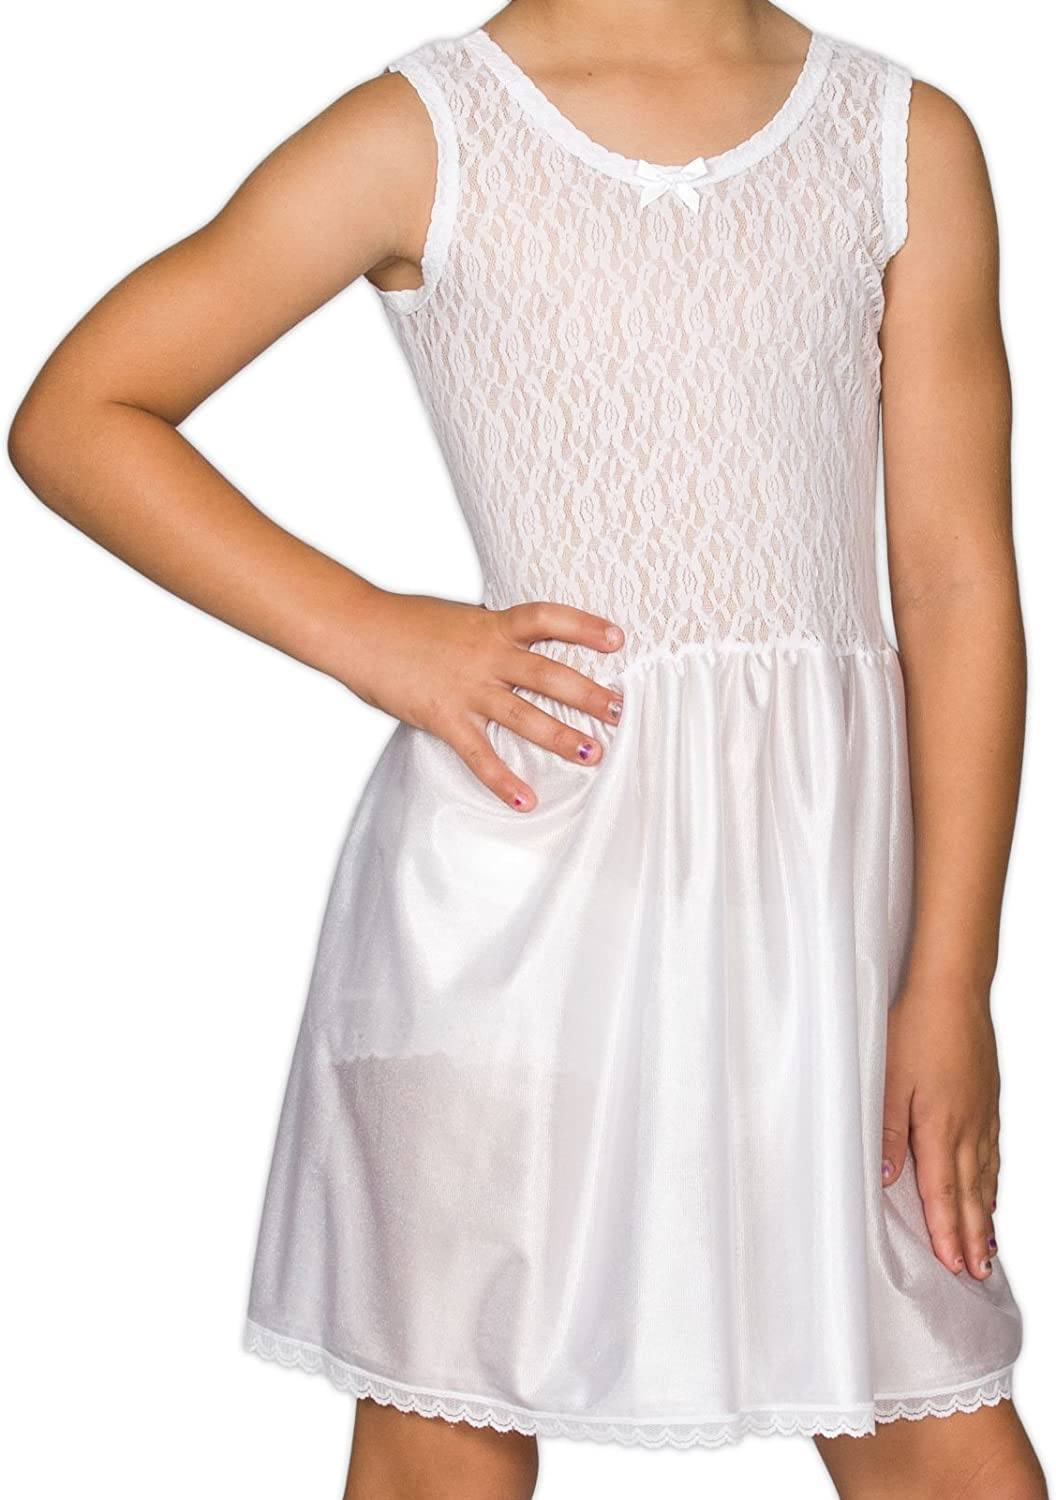 I.C. Collections Little Girls White Stretch Lace Slip, 2T - 6X